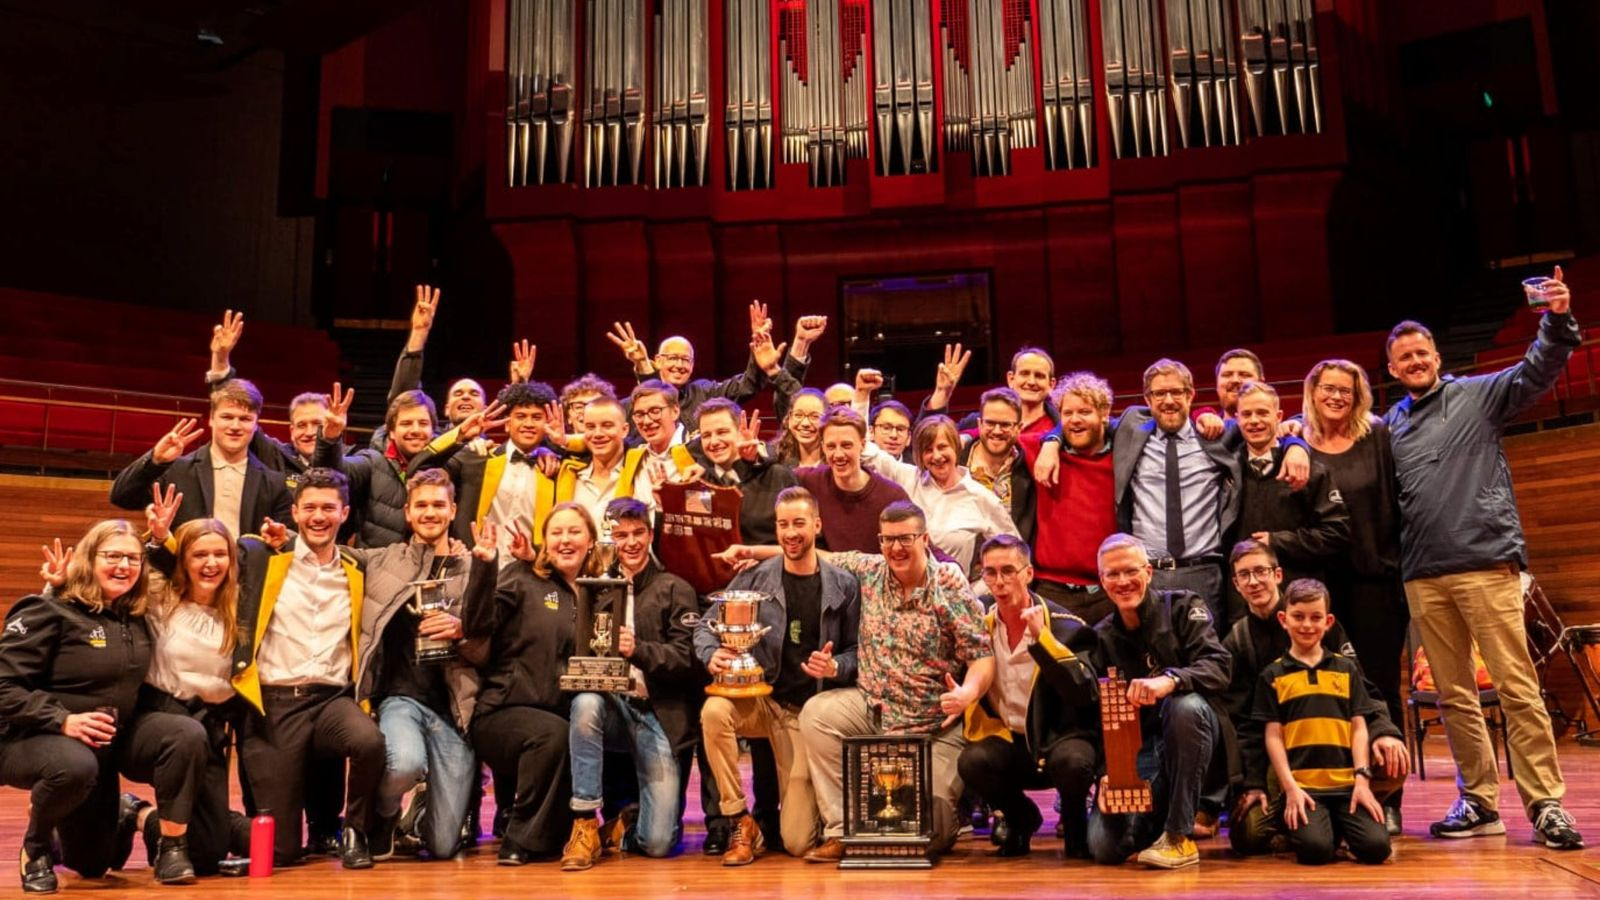 Musicians posing with trophies in the Christchurch Town Hall